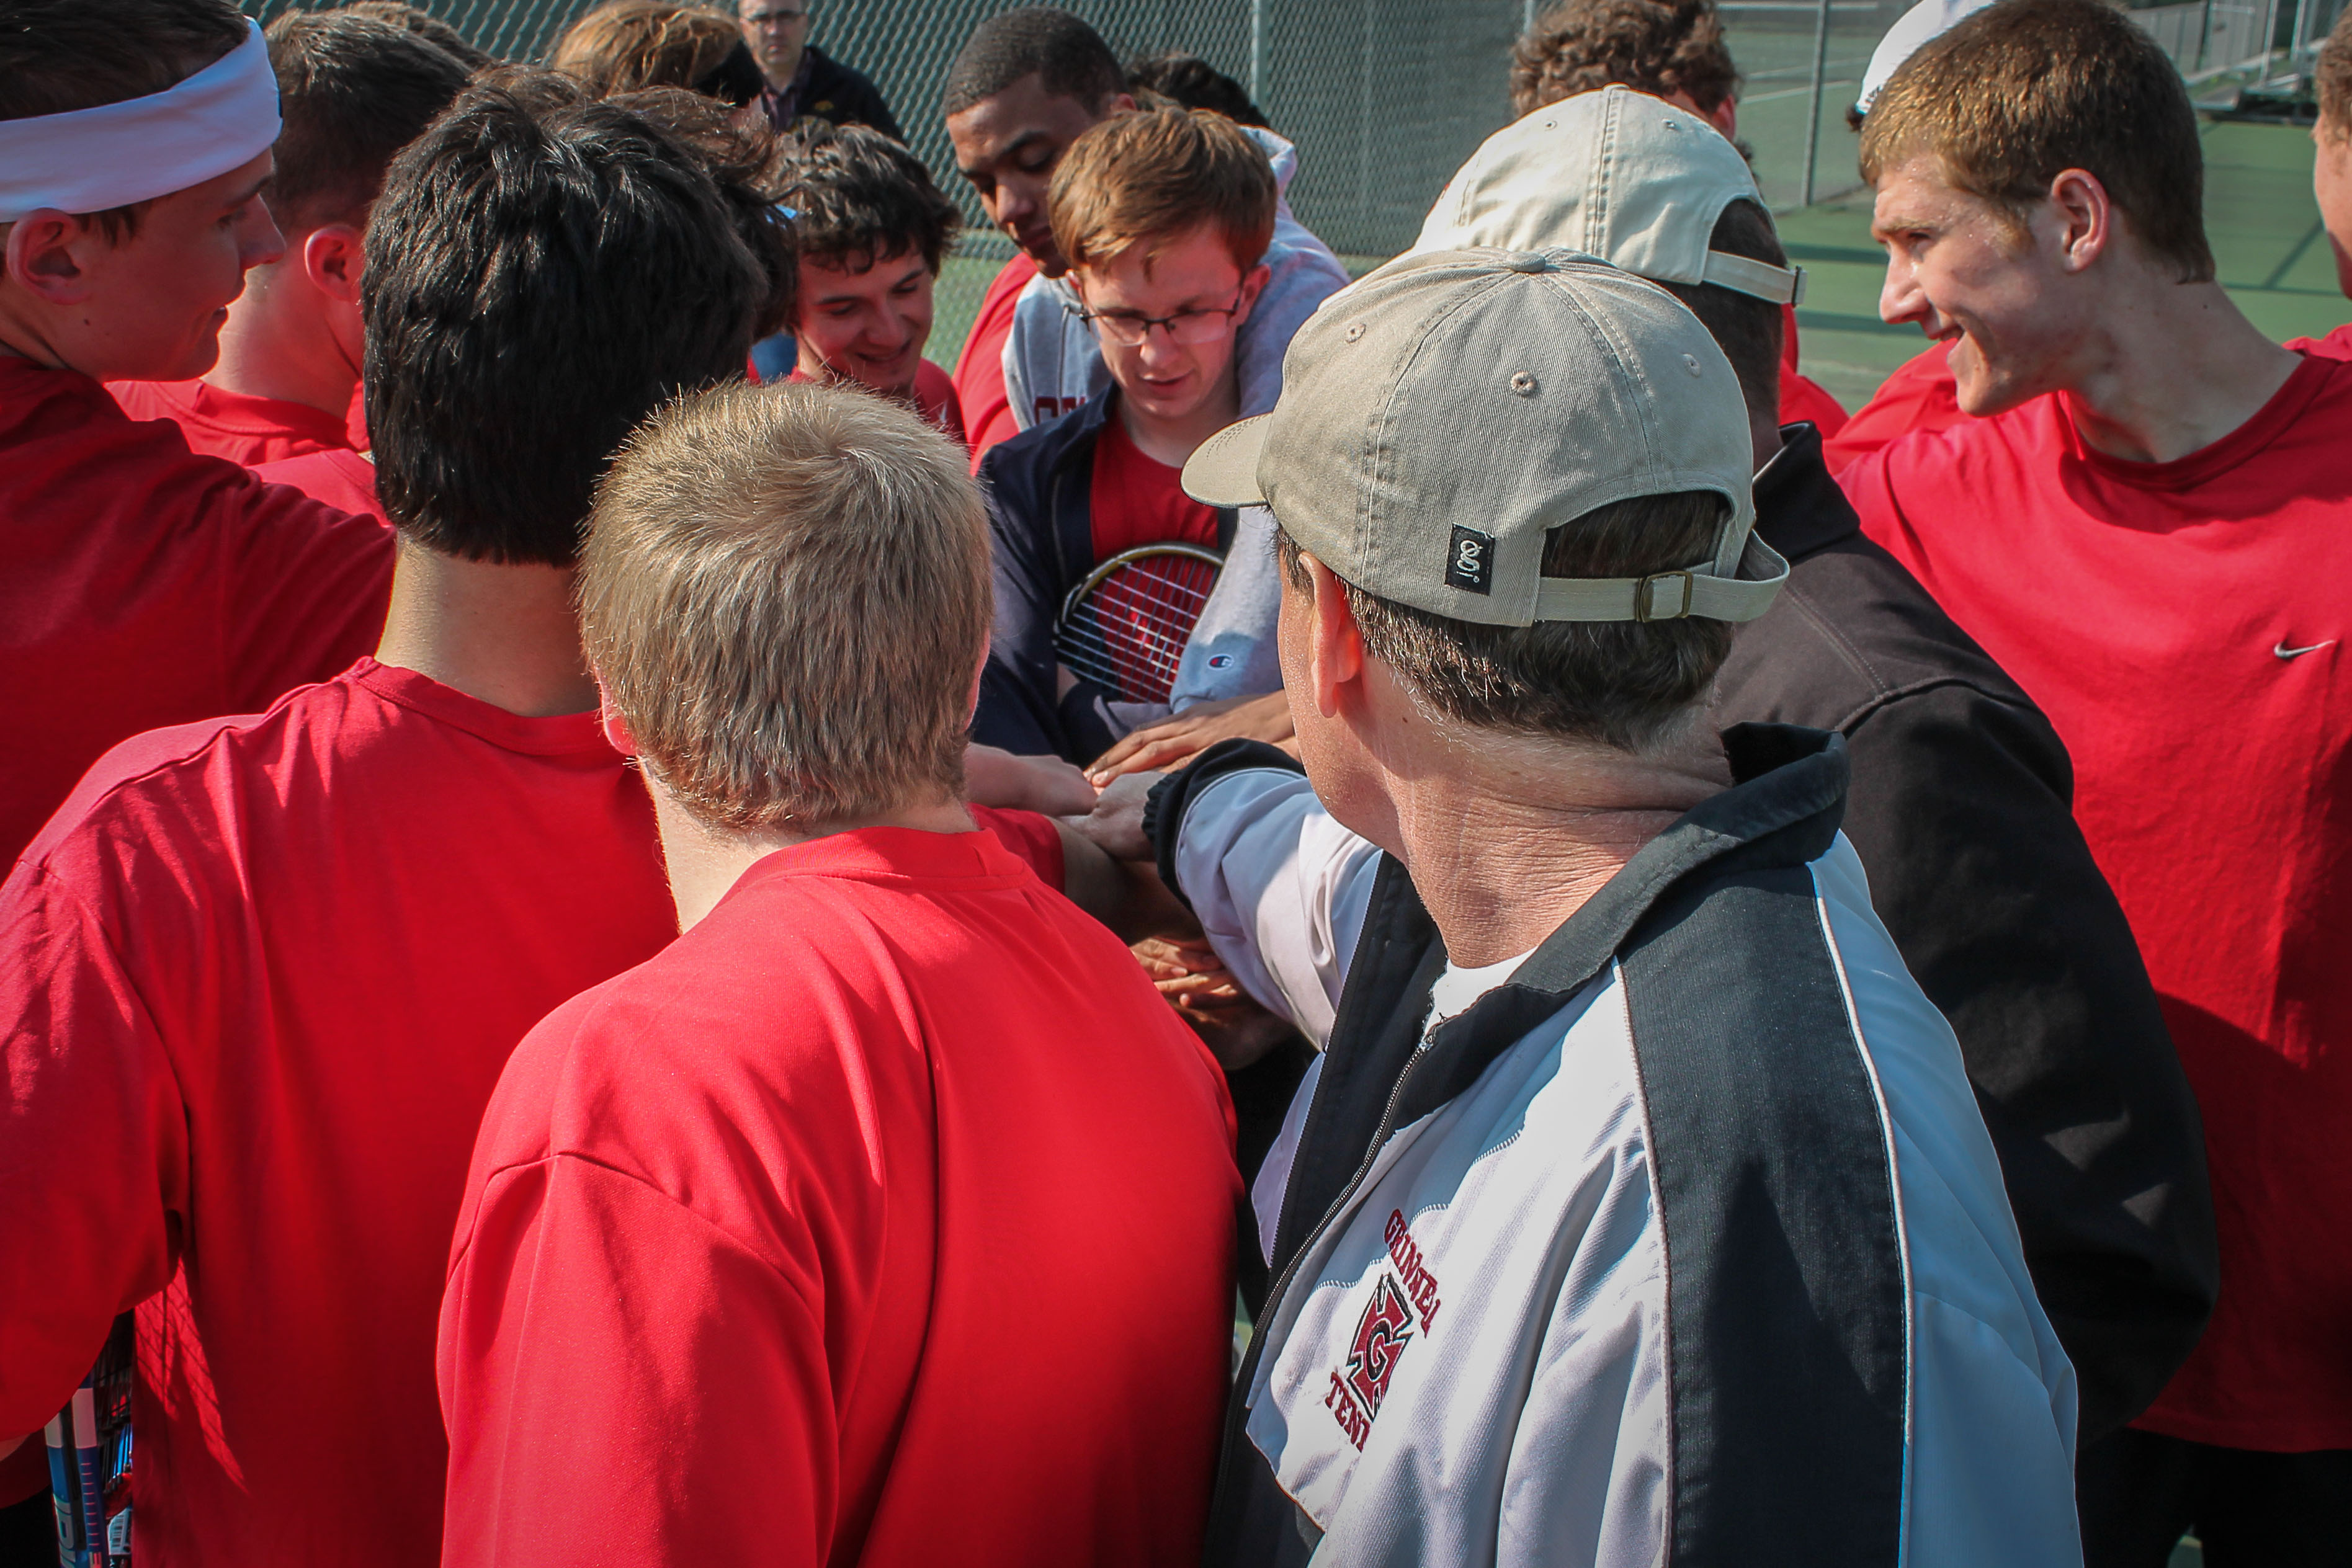 Men's Tennis prepares for next week's Nationals Tournament at practice. Photo by Greg Hinton.